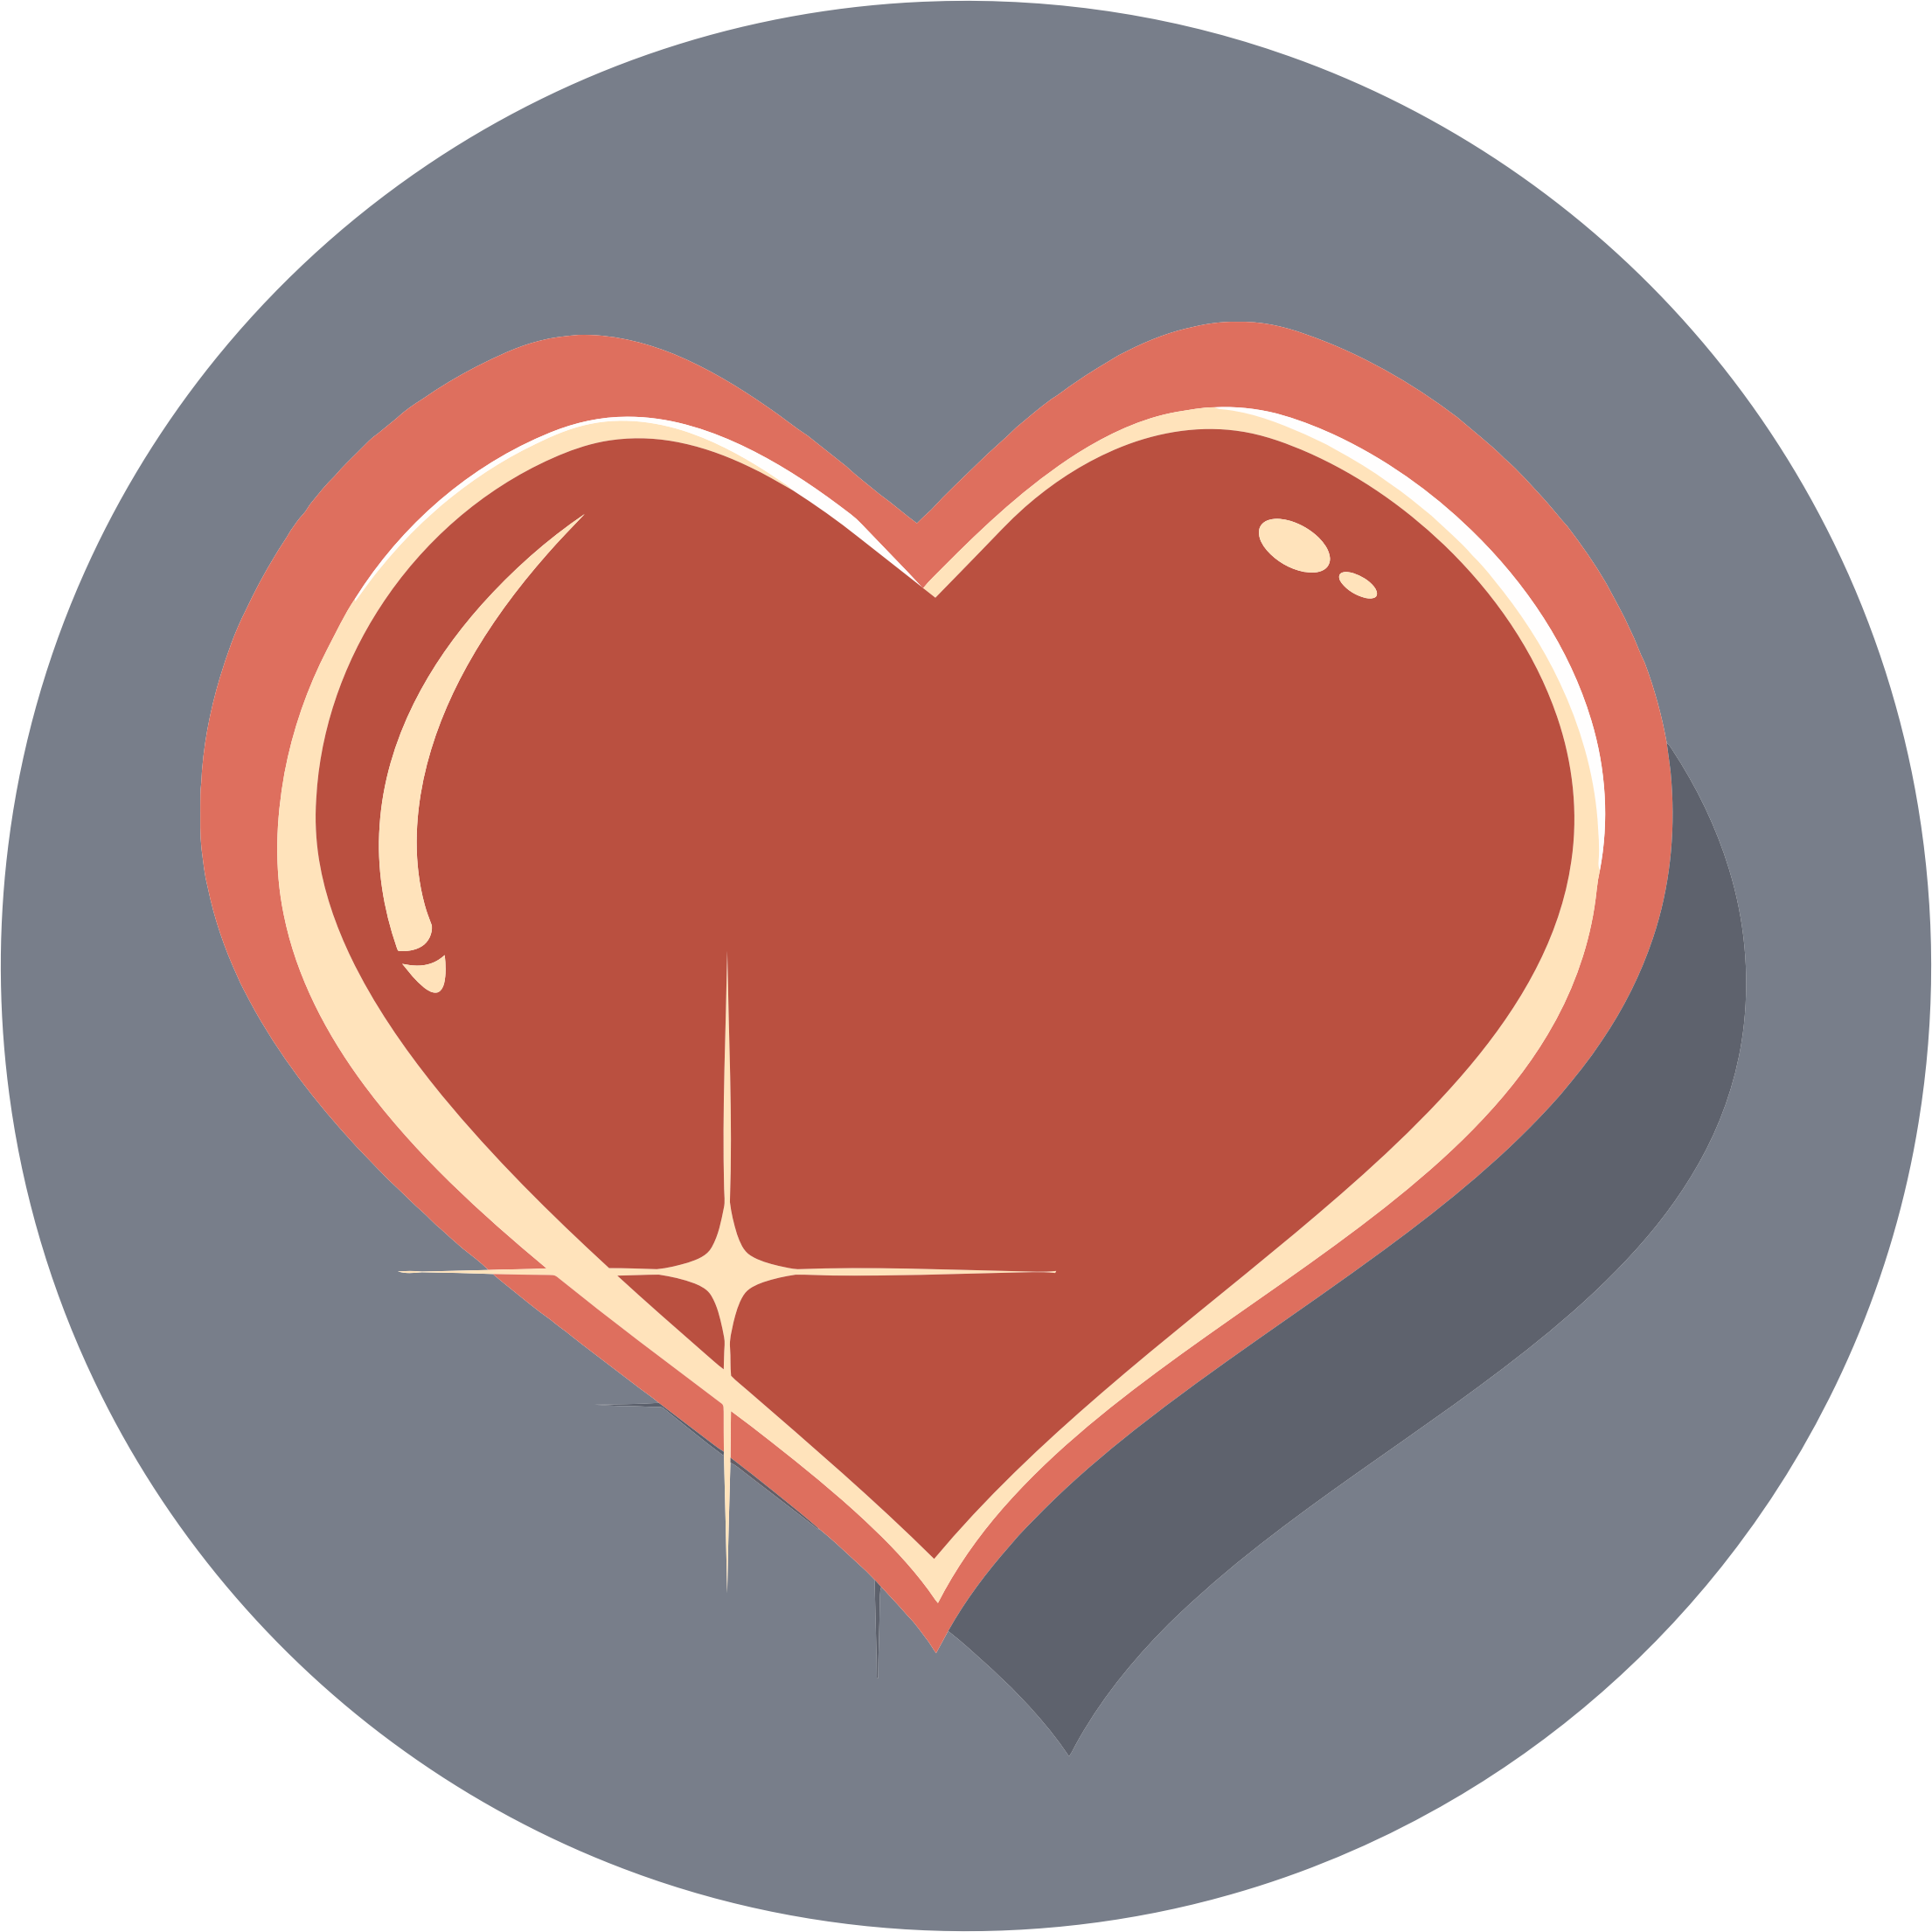 Shiny Heart Icon by GDJ